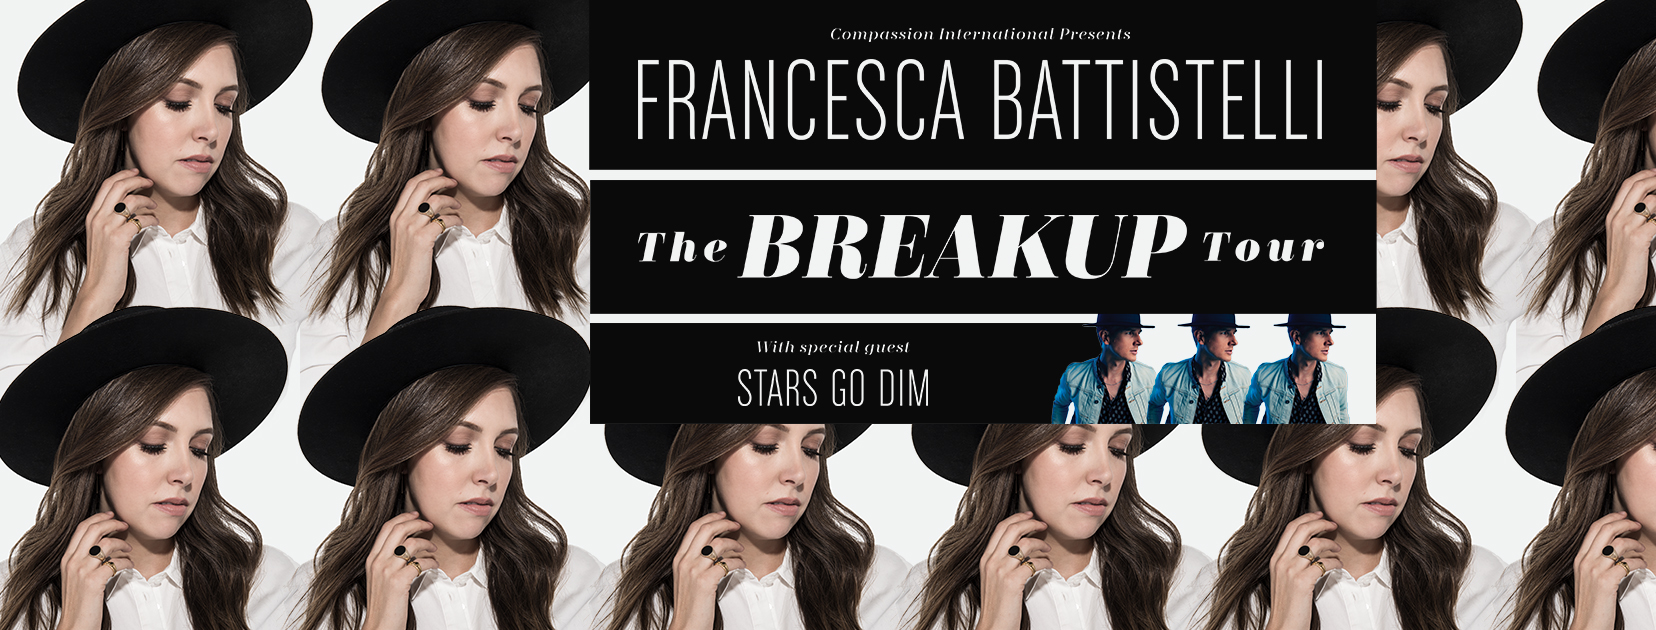 The Breakup Tour with Francesca Battistelli logo